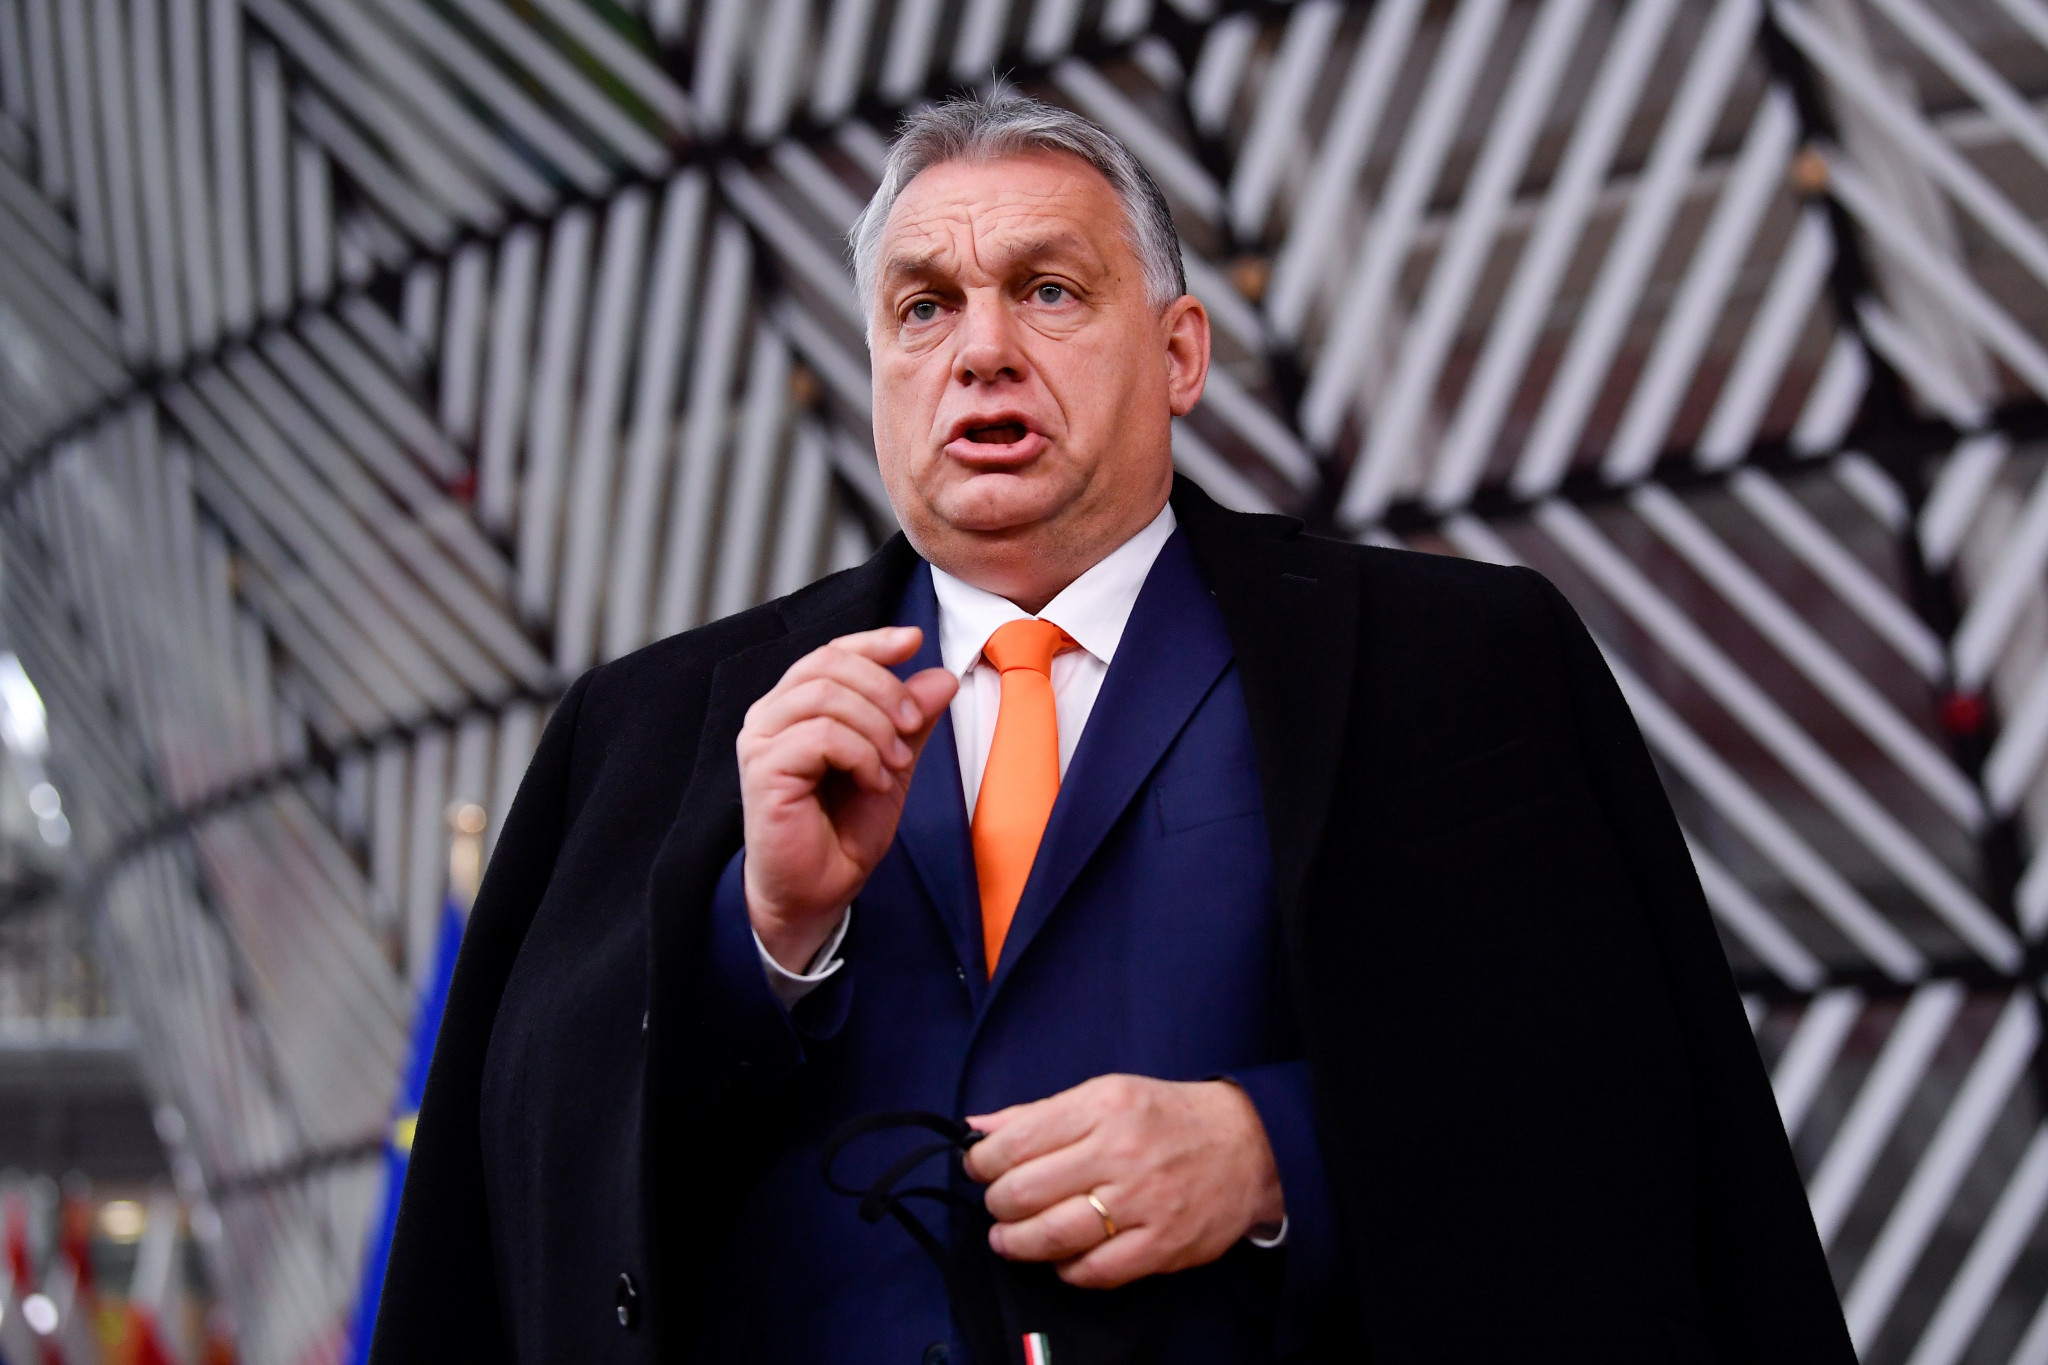 Hungarian Prime Minister Orbán reveals dream of future Olympic bid